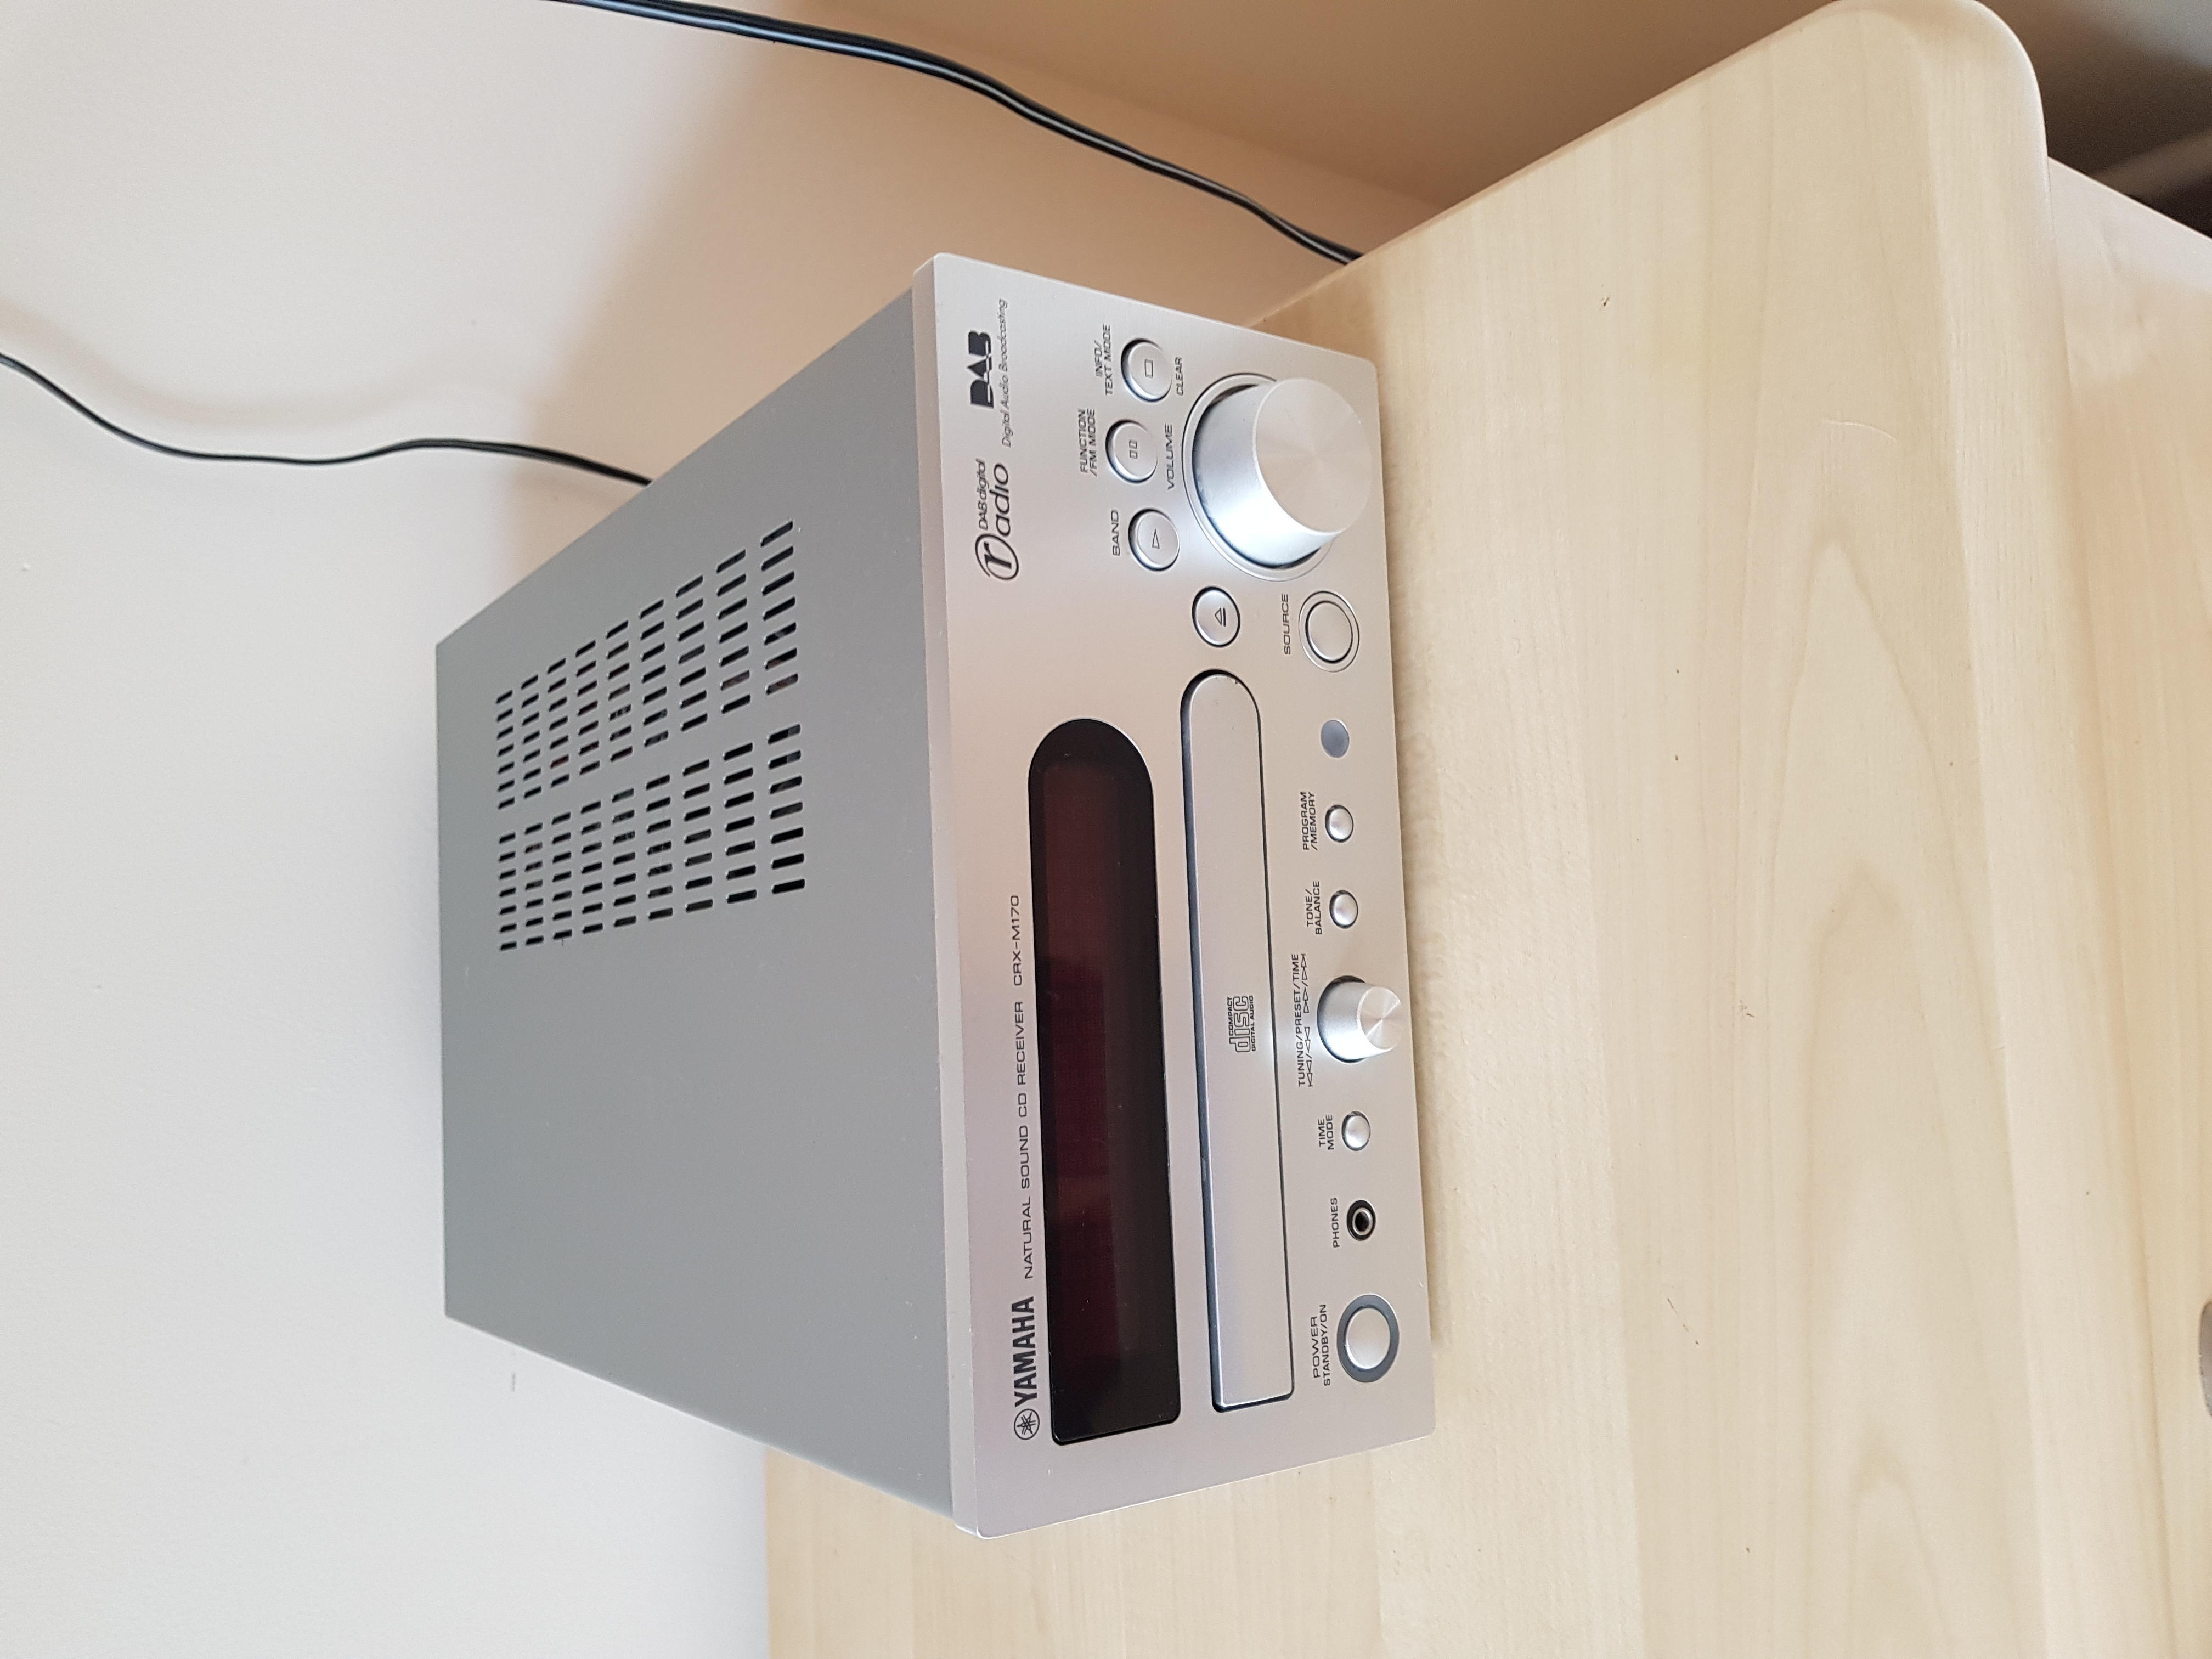 Yamaha cd dab player with demon speakers in Eastbourne